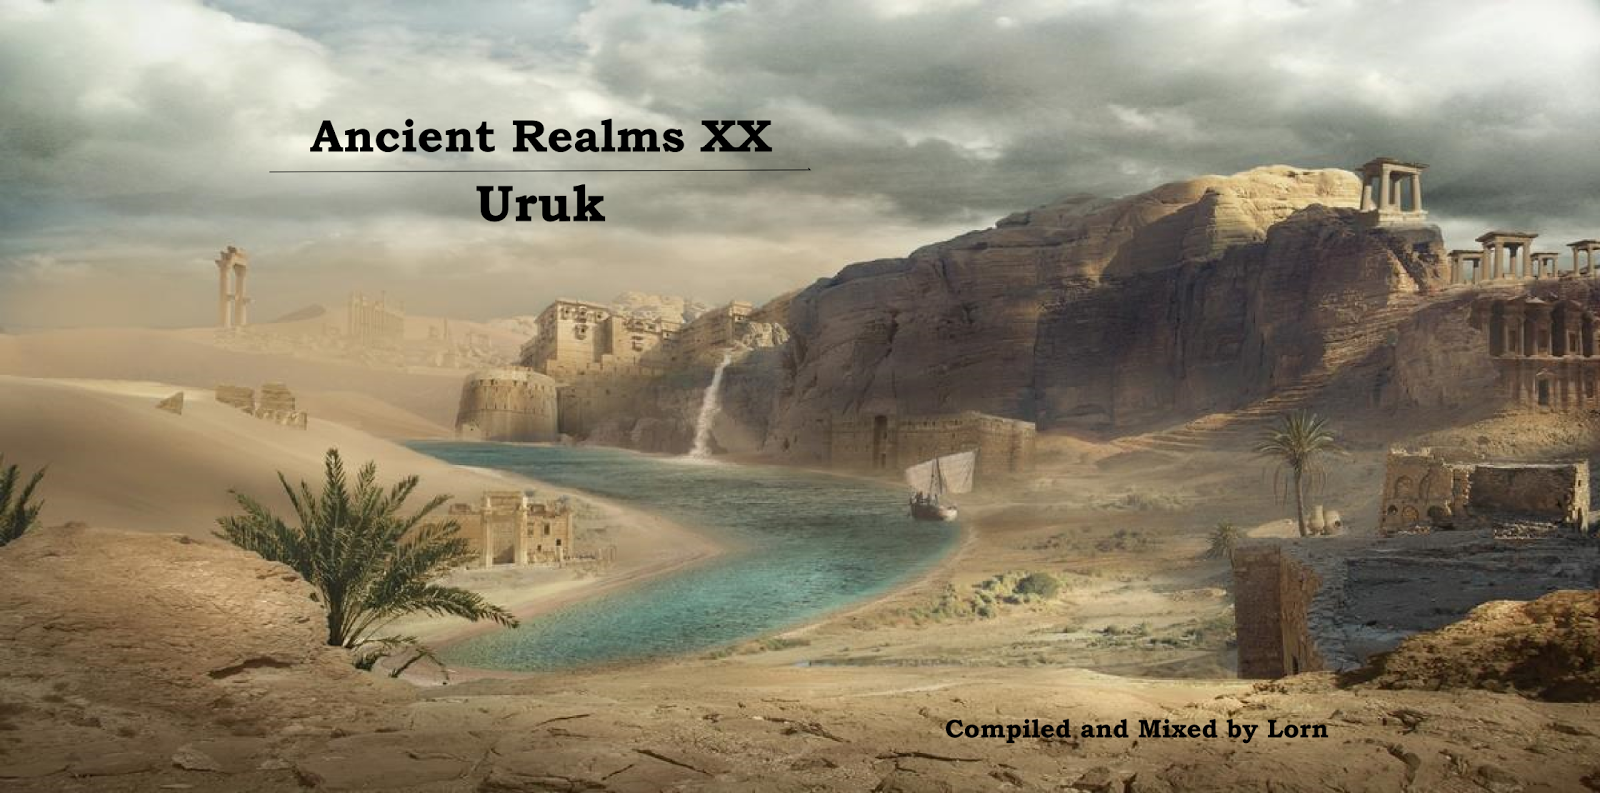 Ancient Realms XX - Uruk